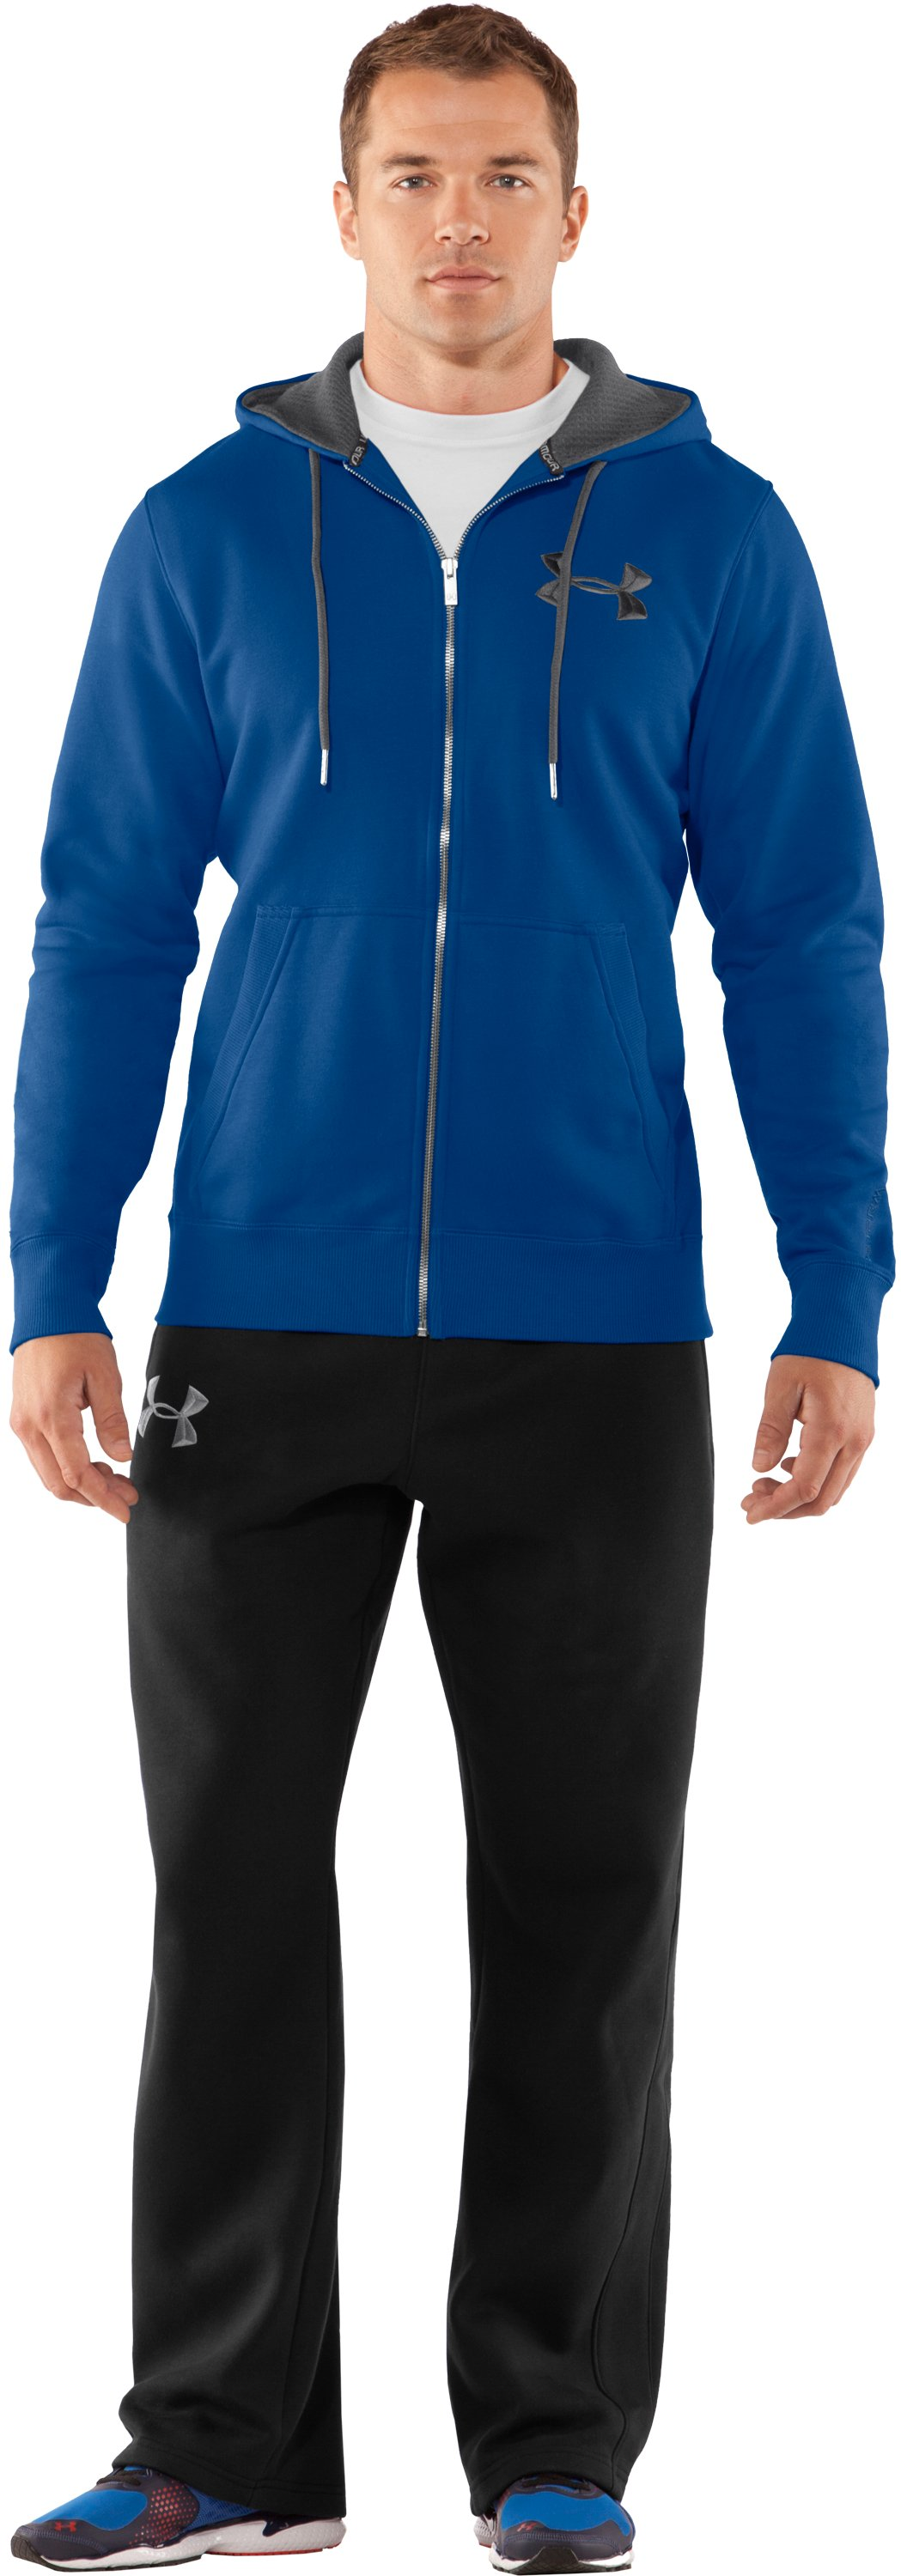 Men's Charged Cotton® Storm Full Zip Hoodie, EMPIRE BLUE, zoomed image